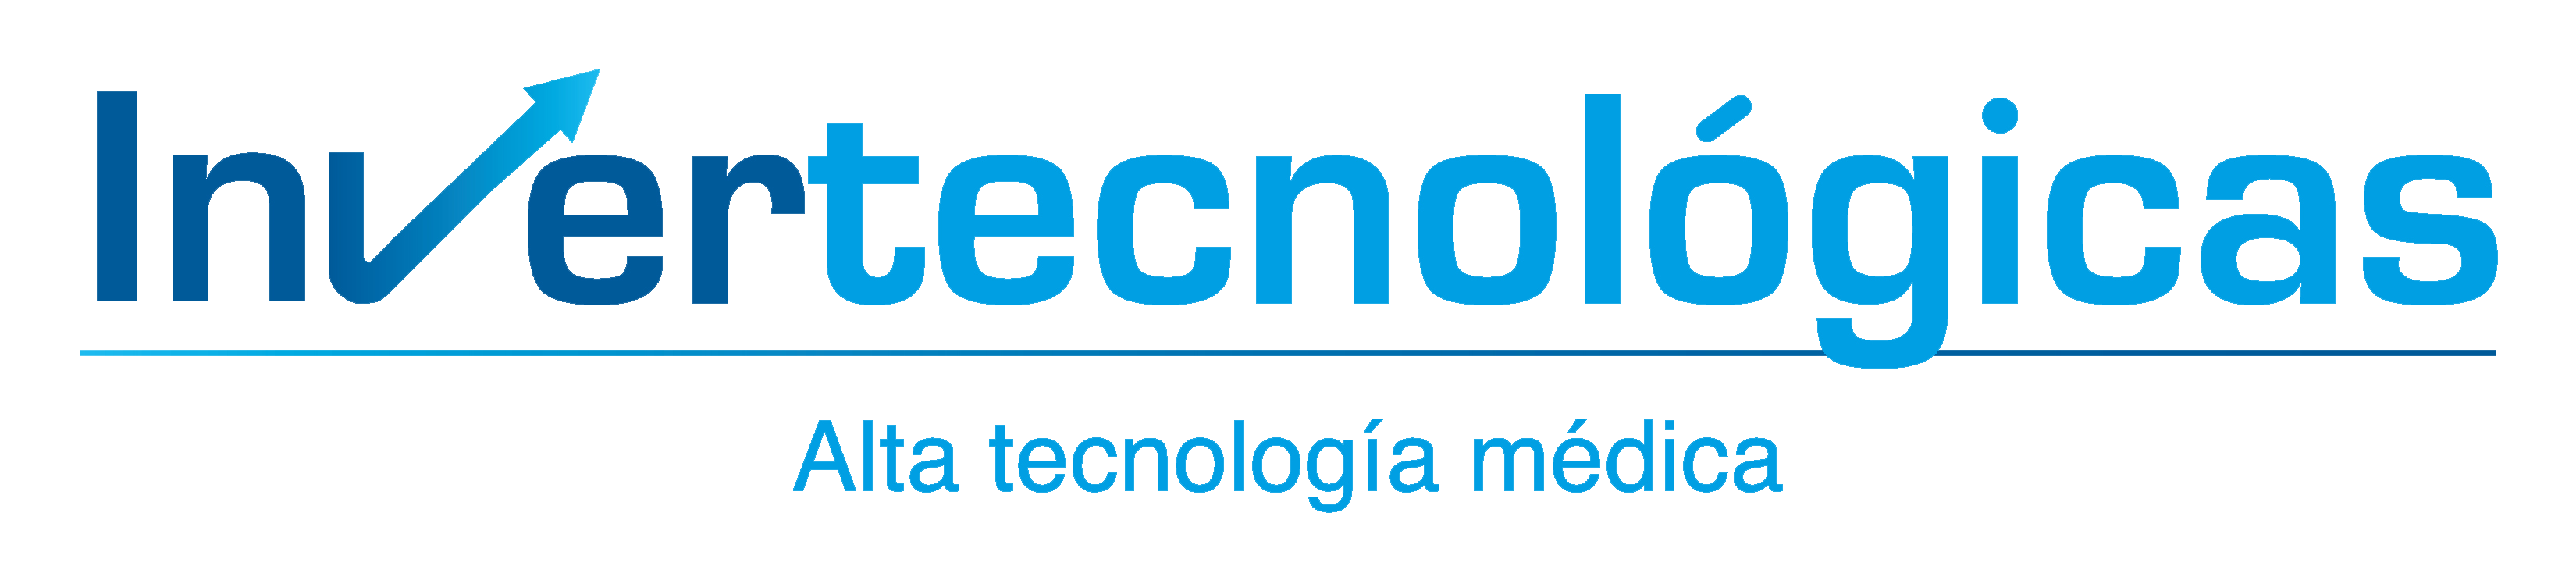 logo-Invertecnologicas